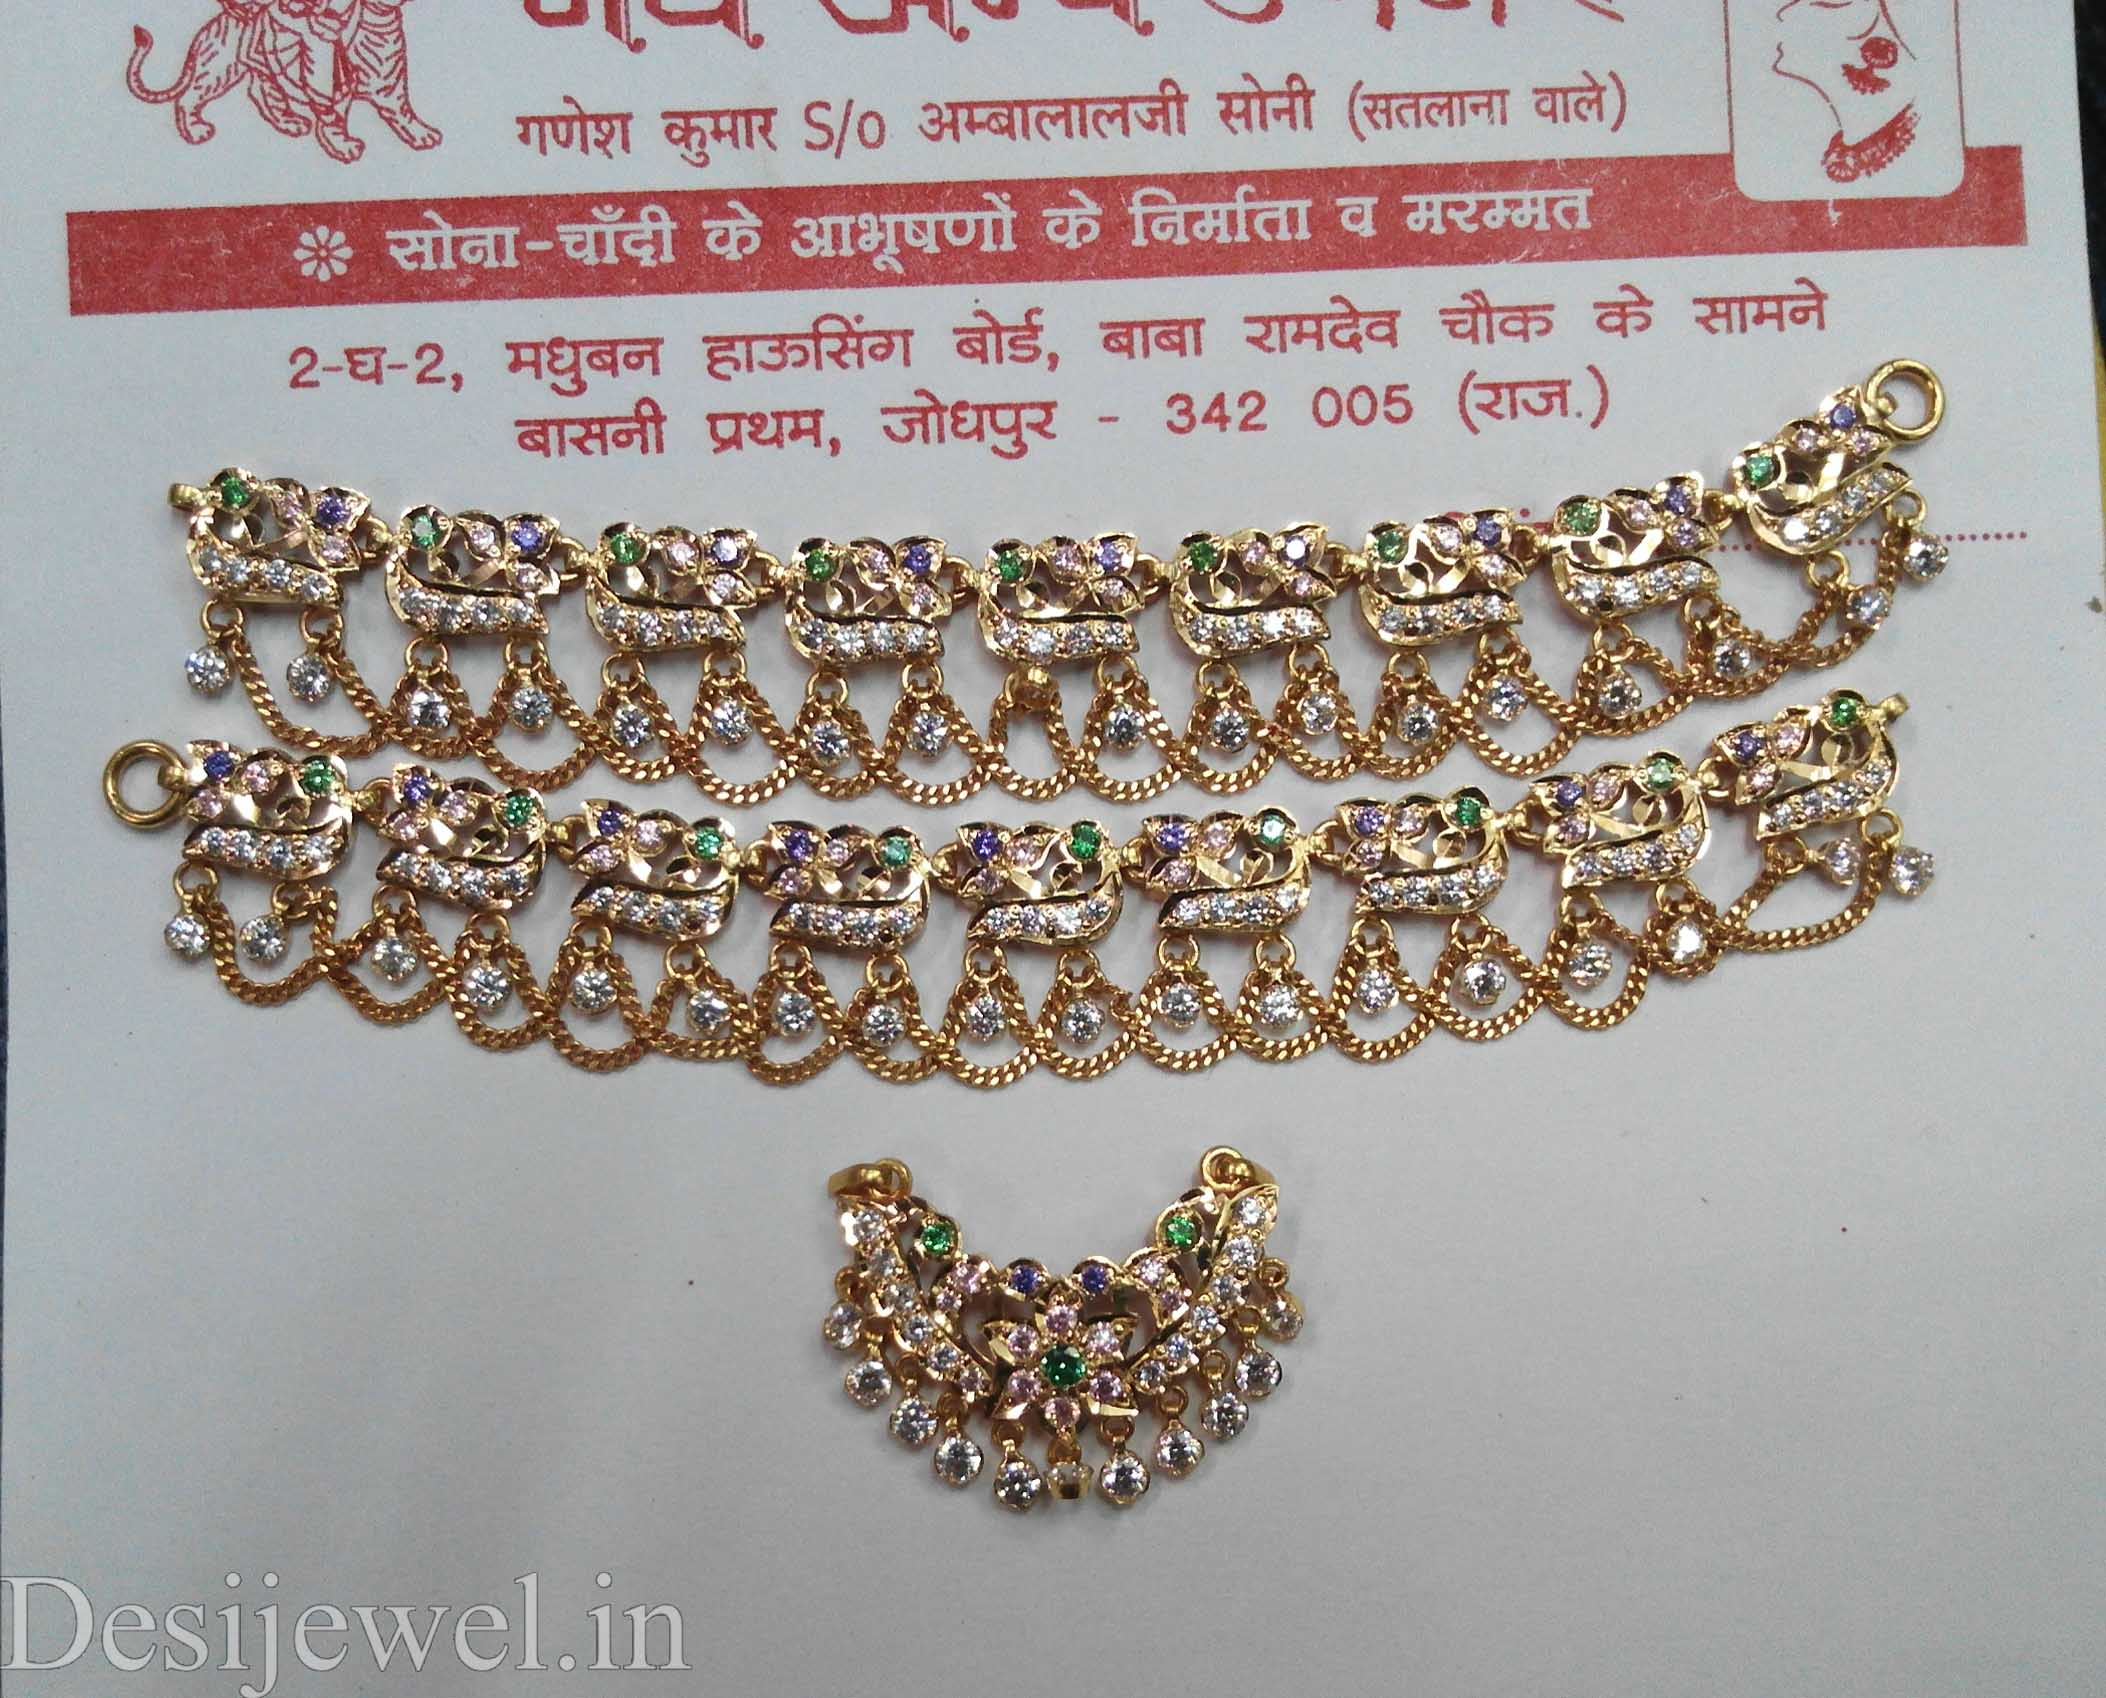 Marwadi Rajasthani Desi gold Rakhdi-Set And Weight is 18-30 gm